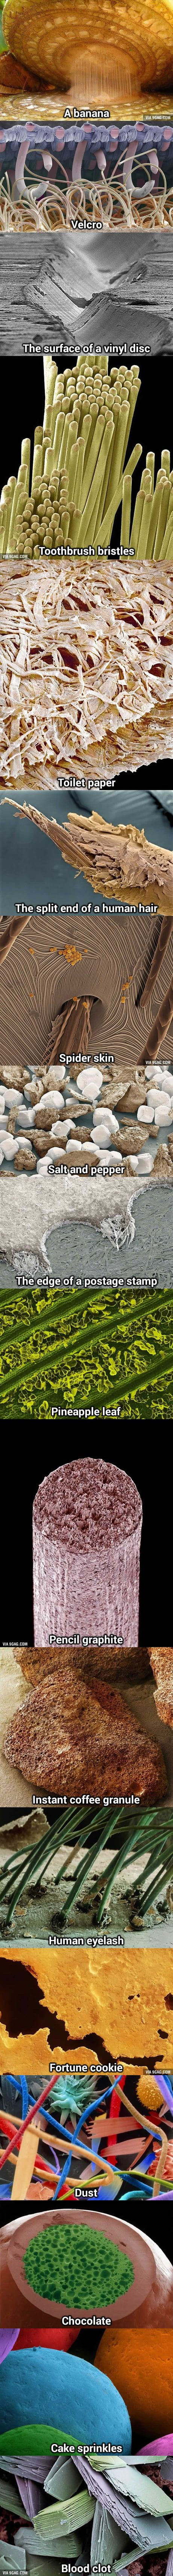 18 Everyday Things Made Awesome Under A Microscope.